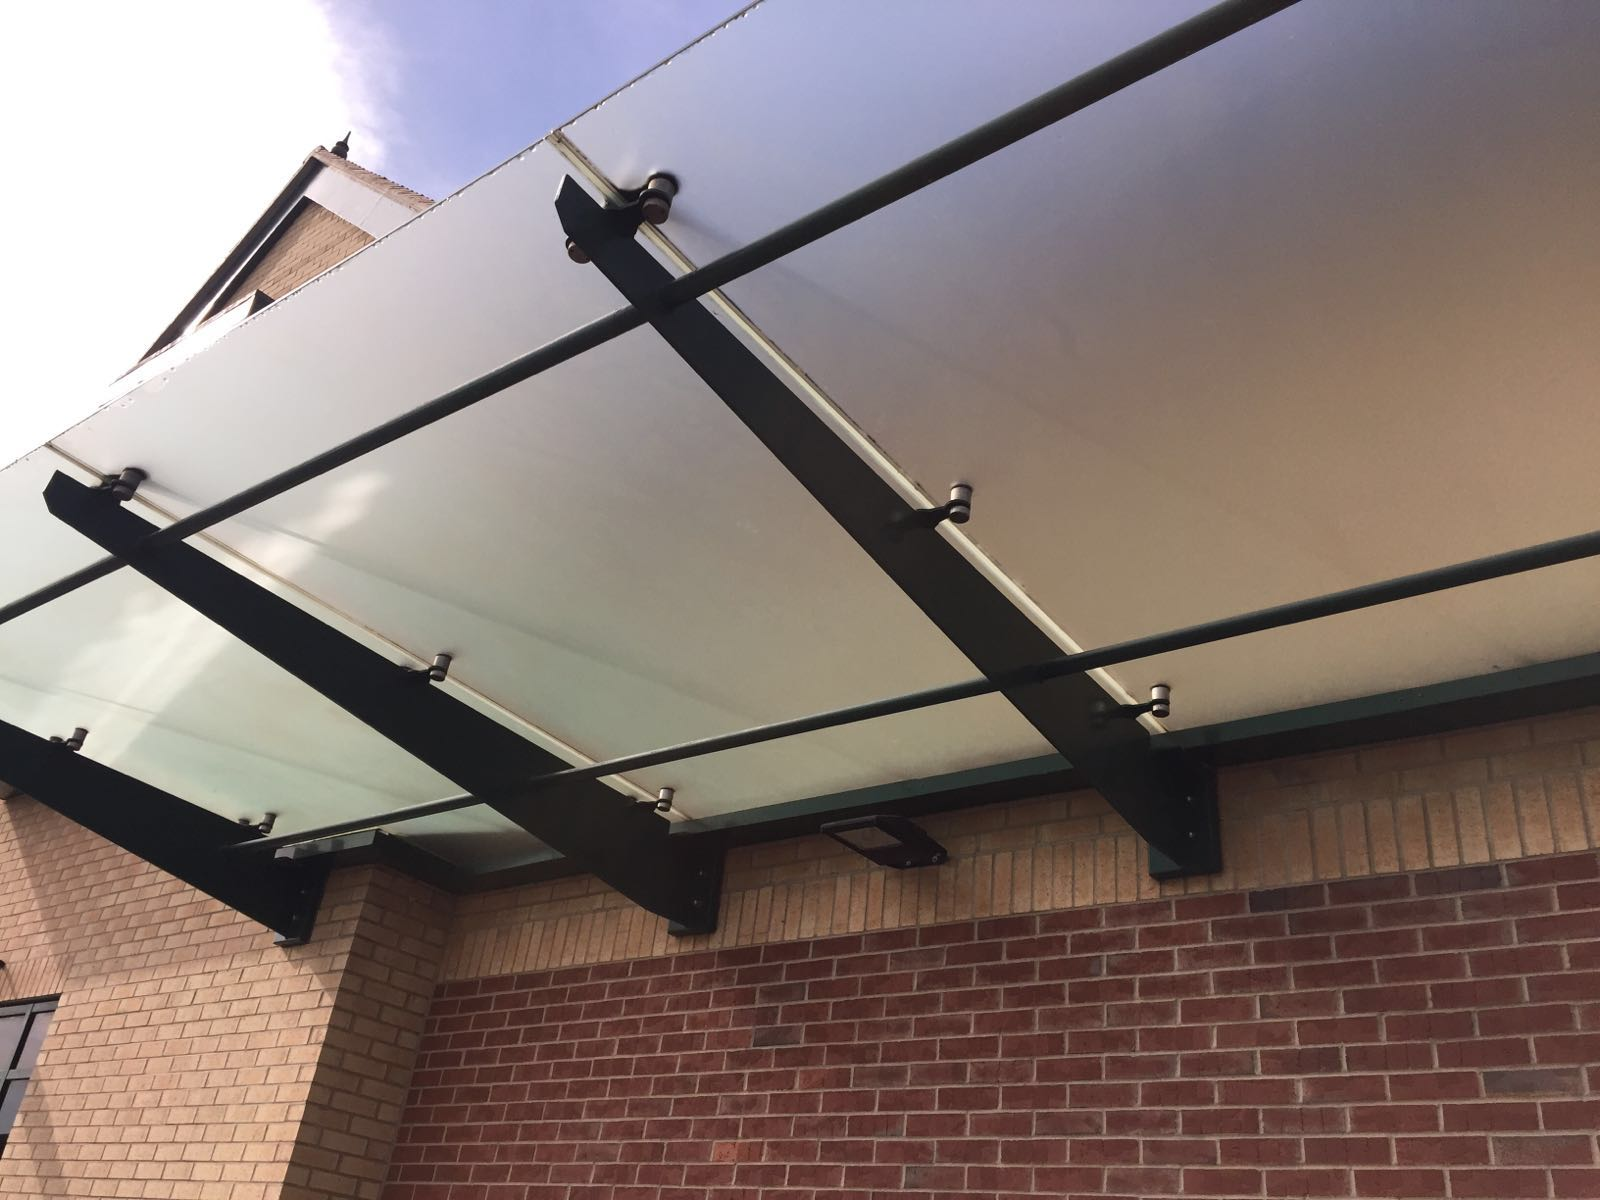 Canopy clean at Houghton Regis